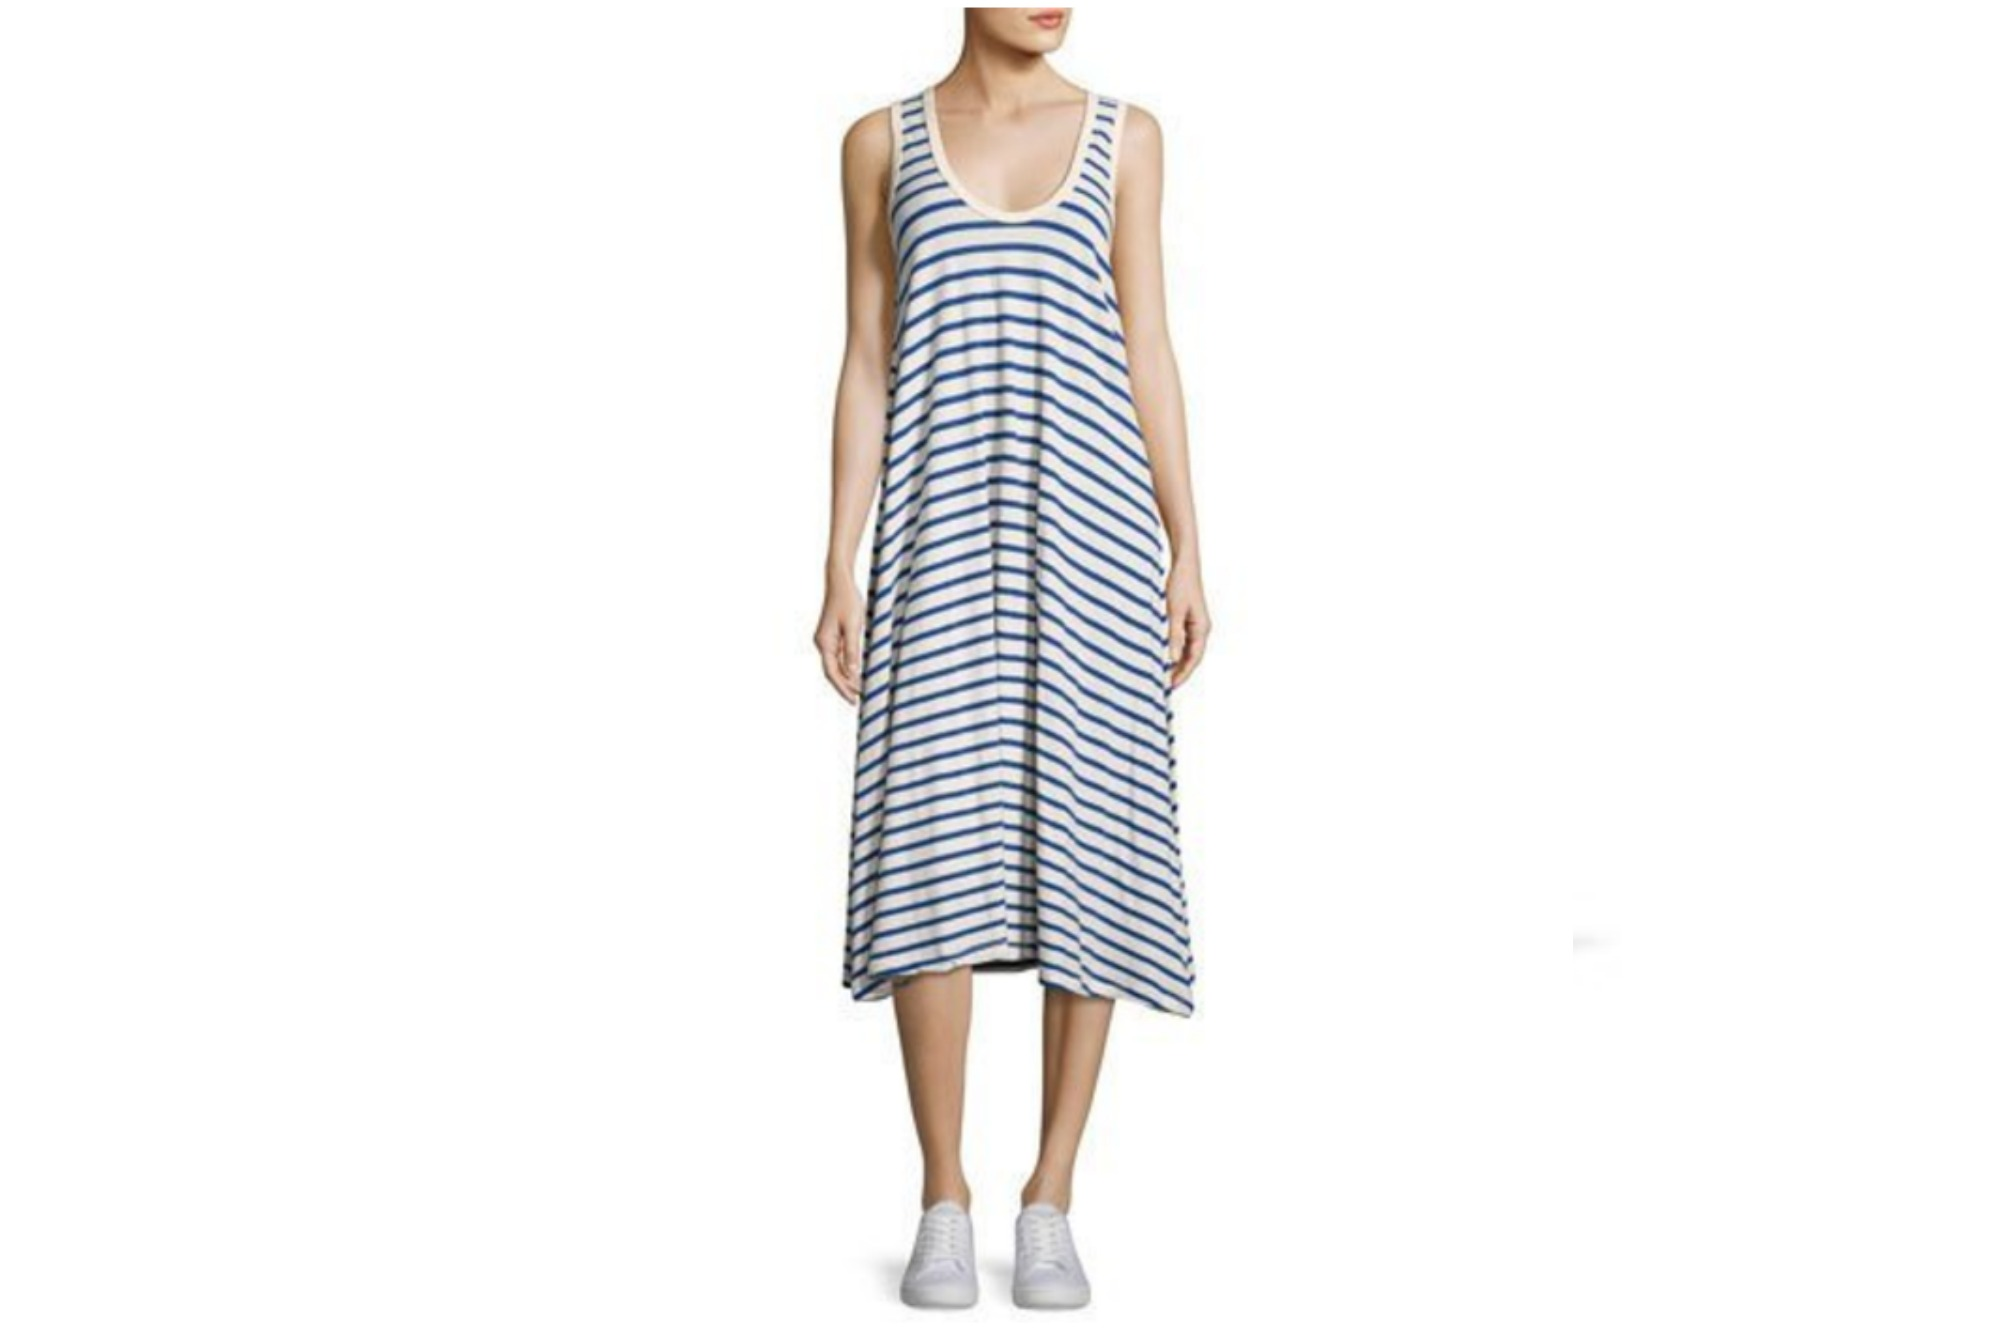 The Great Striped Dress